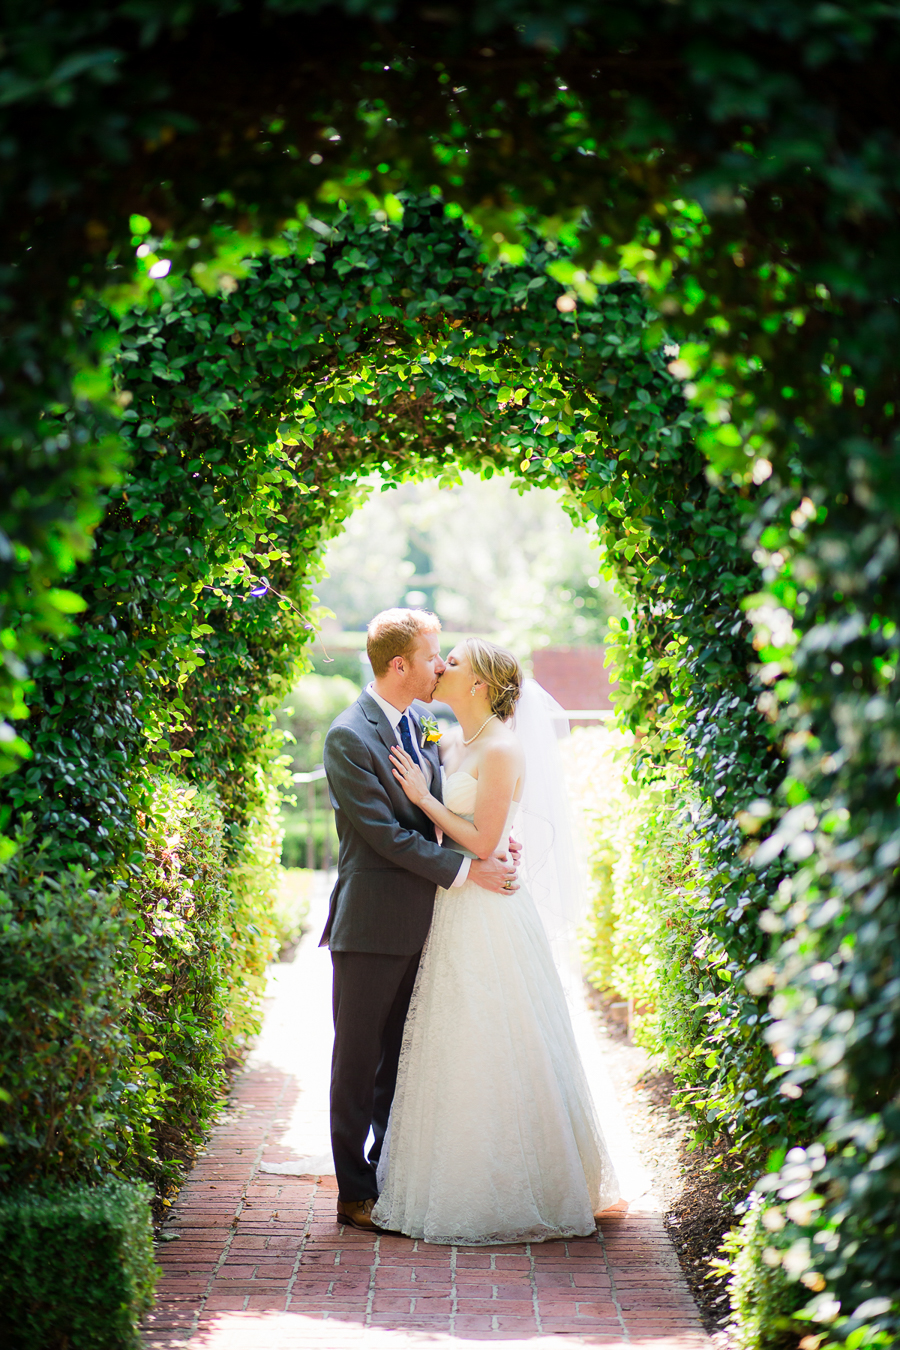 Houston Wedding Photographer - Jessica Pledger Photography